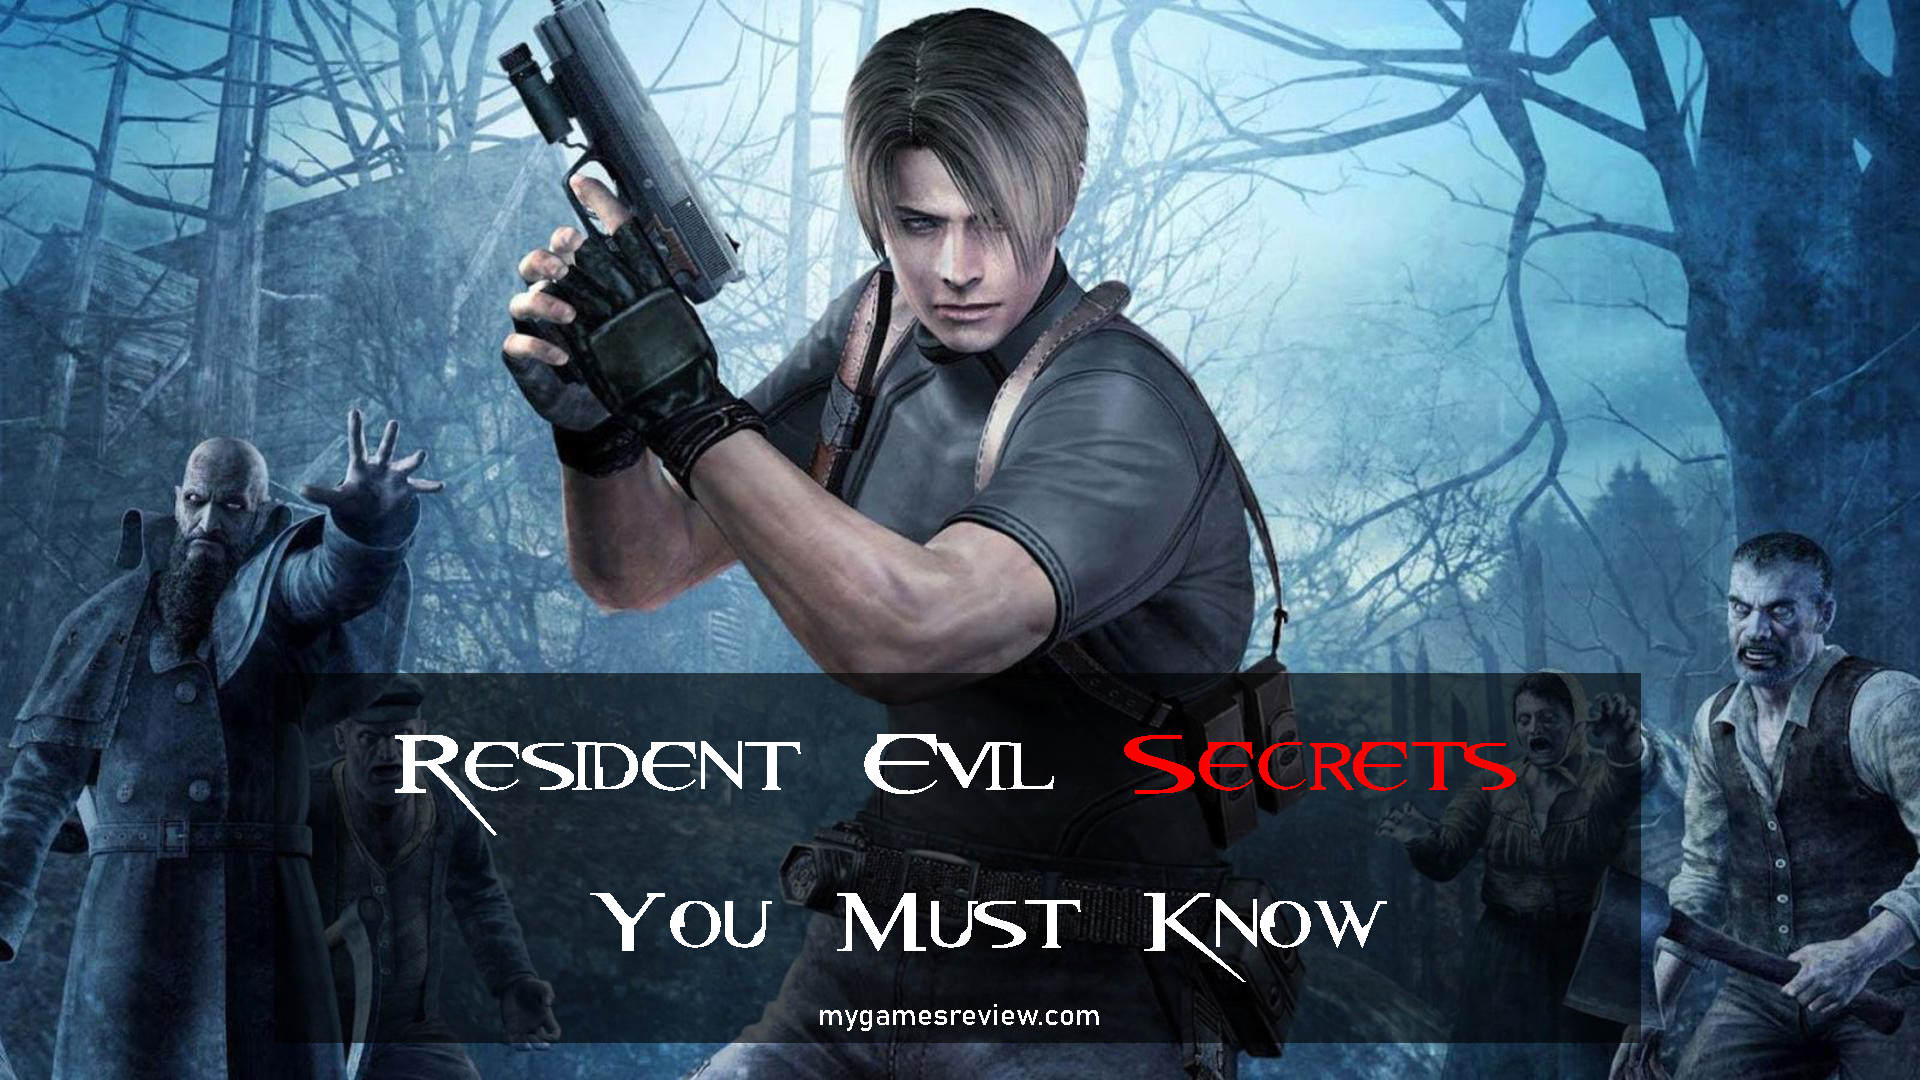 Resident Evil 4 Secrets You Must Know